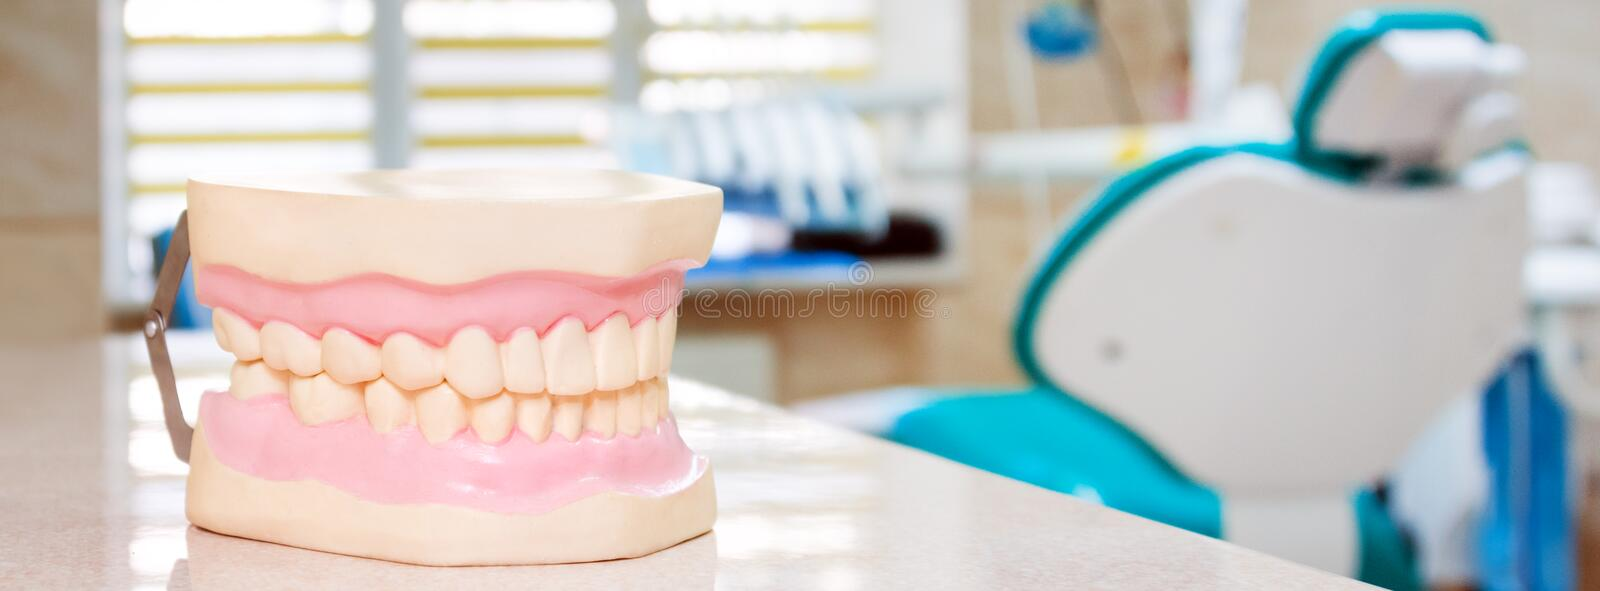 Human jaw models at a dentist office, teeth care and prosthetics concept. Artificial plastic jaw model for demonstrating. Dental care rules to patients stock image